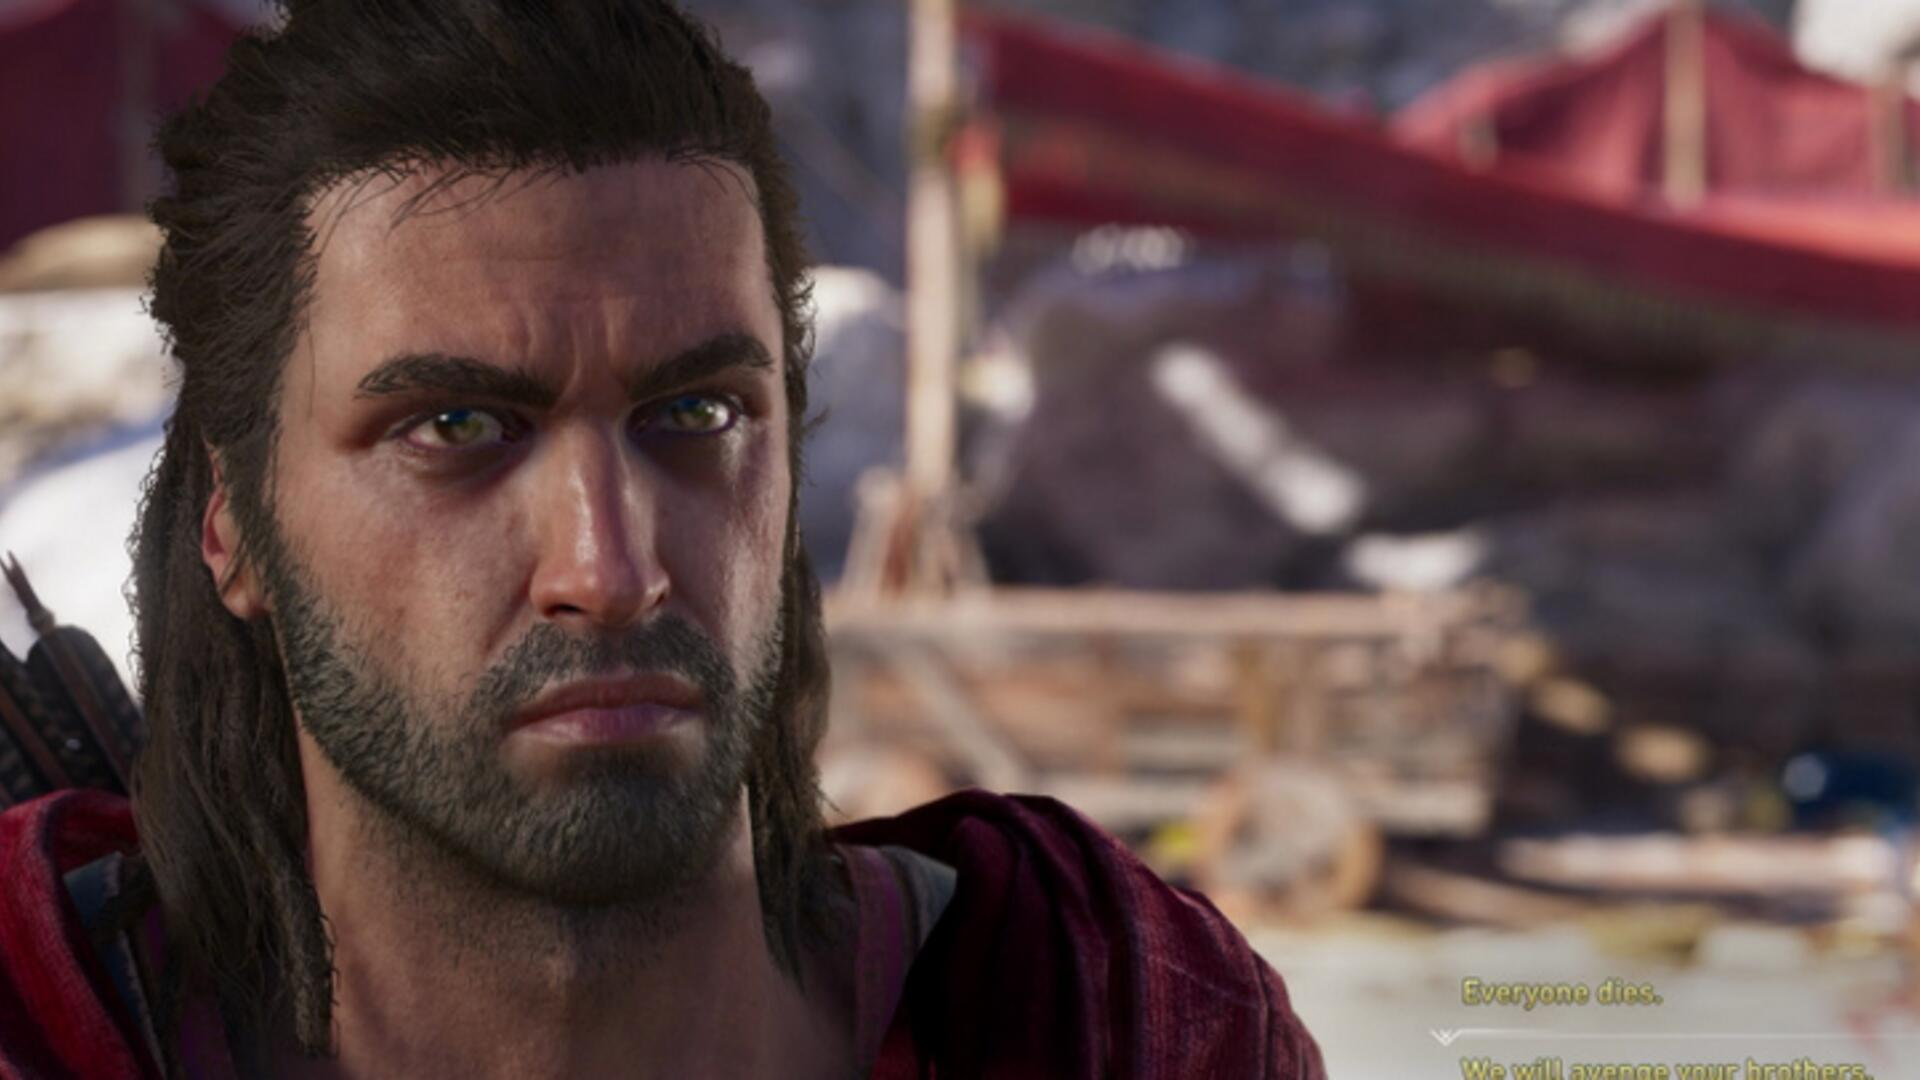 Assassin's Creed Odyssey Release Date, Protagonists Leaked Before E3 Conference